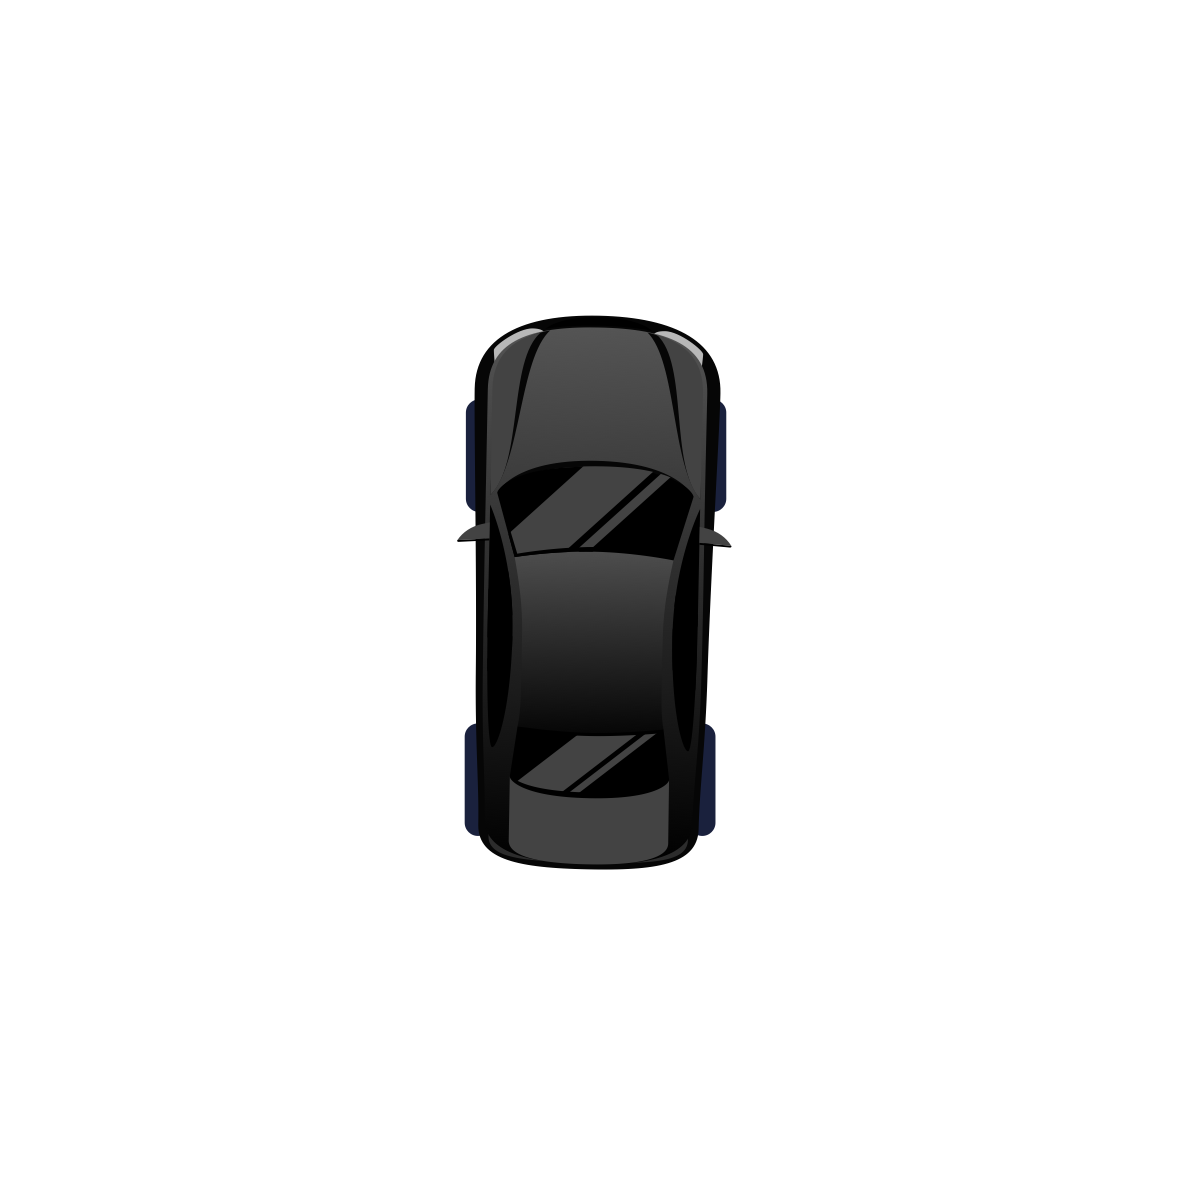 Car Icon for App